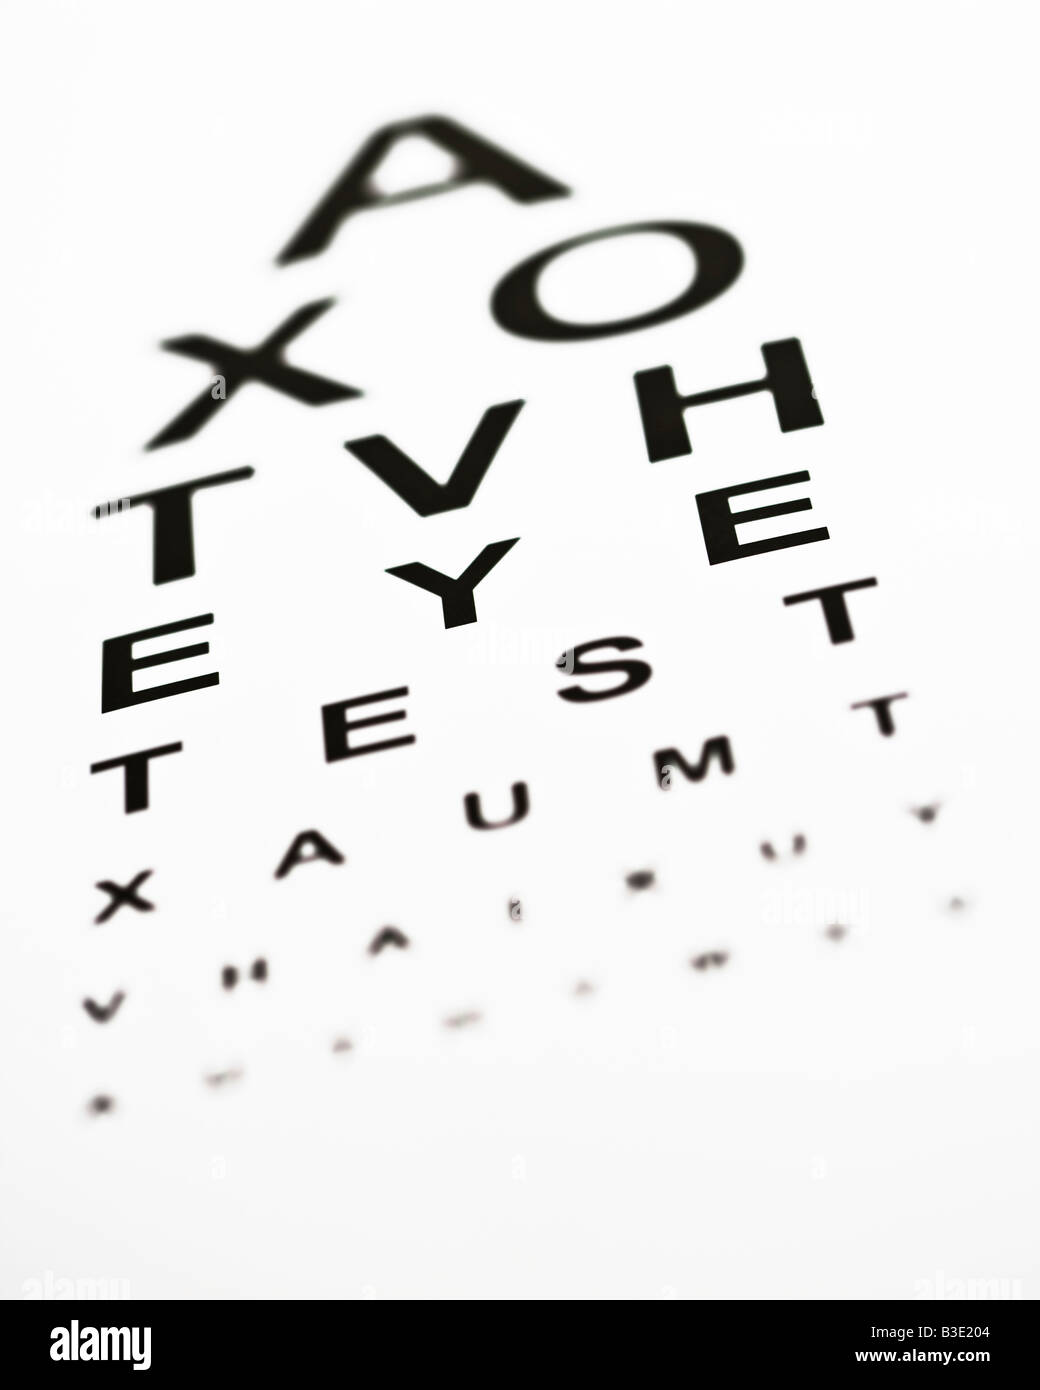 Variation of a optometrists eye chart with the words eye test being variation of a optometrists eye chart with the words eye test being visible nvjuhfo Gallery